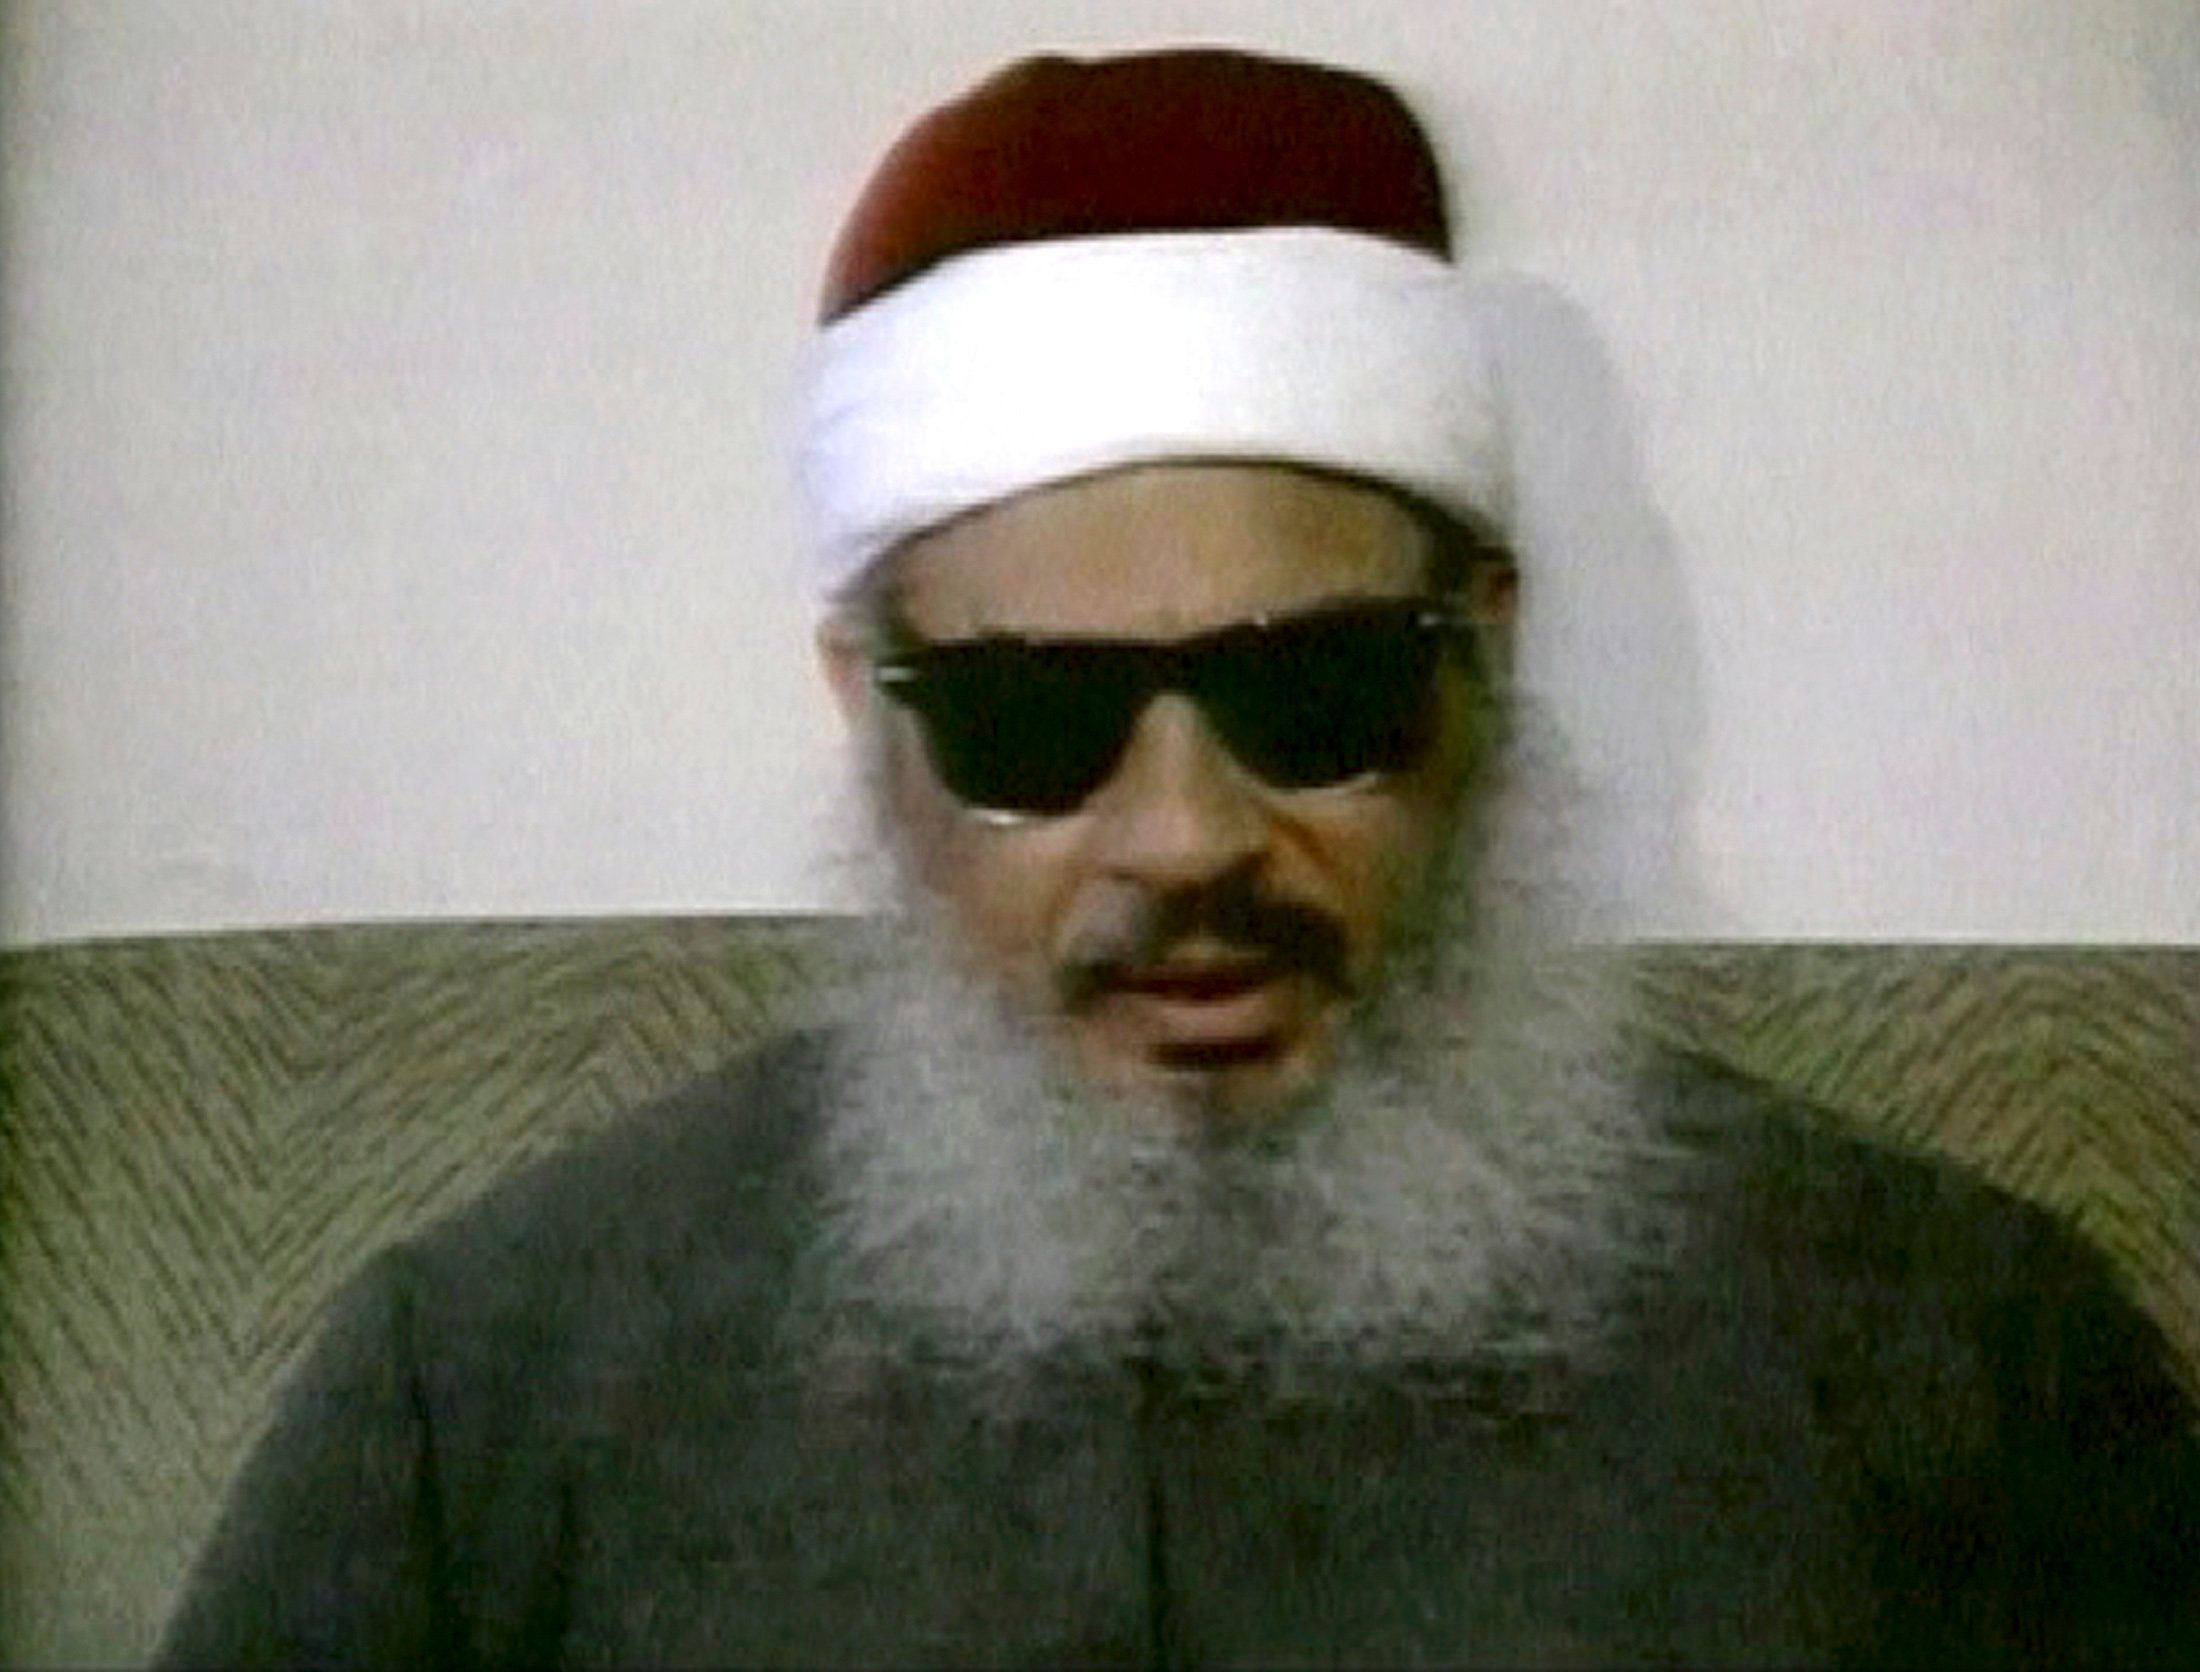 Egyptian Omar Abdel-Rahman speaks during a news conference in this still image taken from February 1993 video footage on January 18, 2013. The Al-Qaeda linked kidnappers who took hundreds of people hostage at a gas plant in Algeria have offered to swap U.S. captives for two militants currently jailed in the United States, according to the Mauritanian news agency, ANI. The kidnappers named Pakistani Aafia Siddiqui and Egyptian Omar Abdel-Rahman as the militants they wish to be freed. REUTERS/Reuters TV/Files (UNITED STATES - Tags: POLITICS CONFLICT)